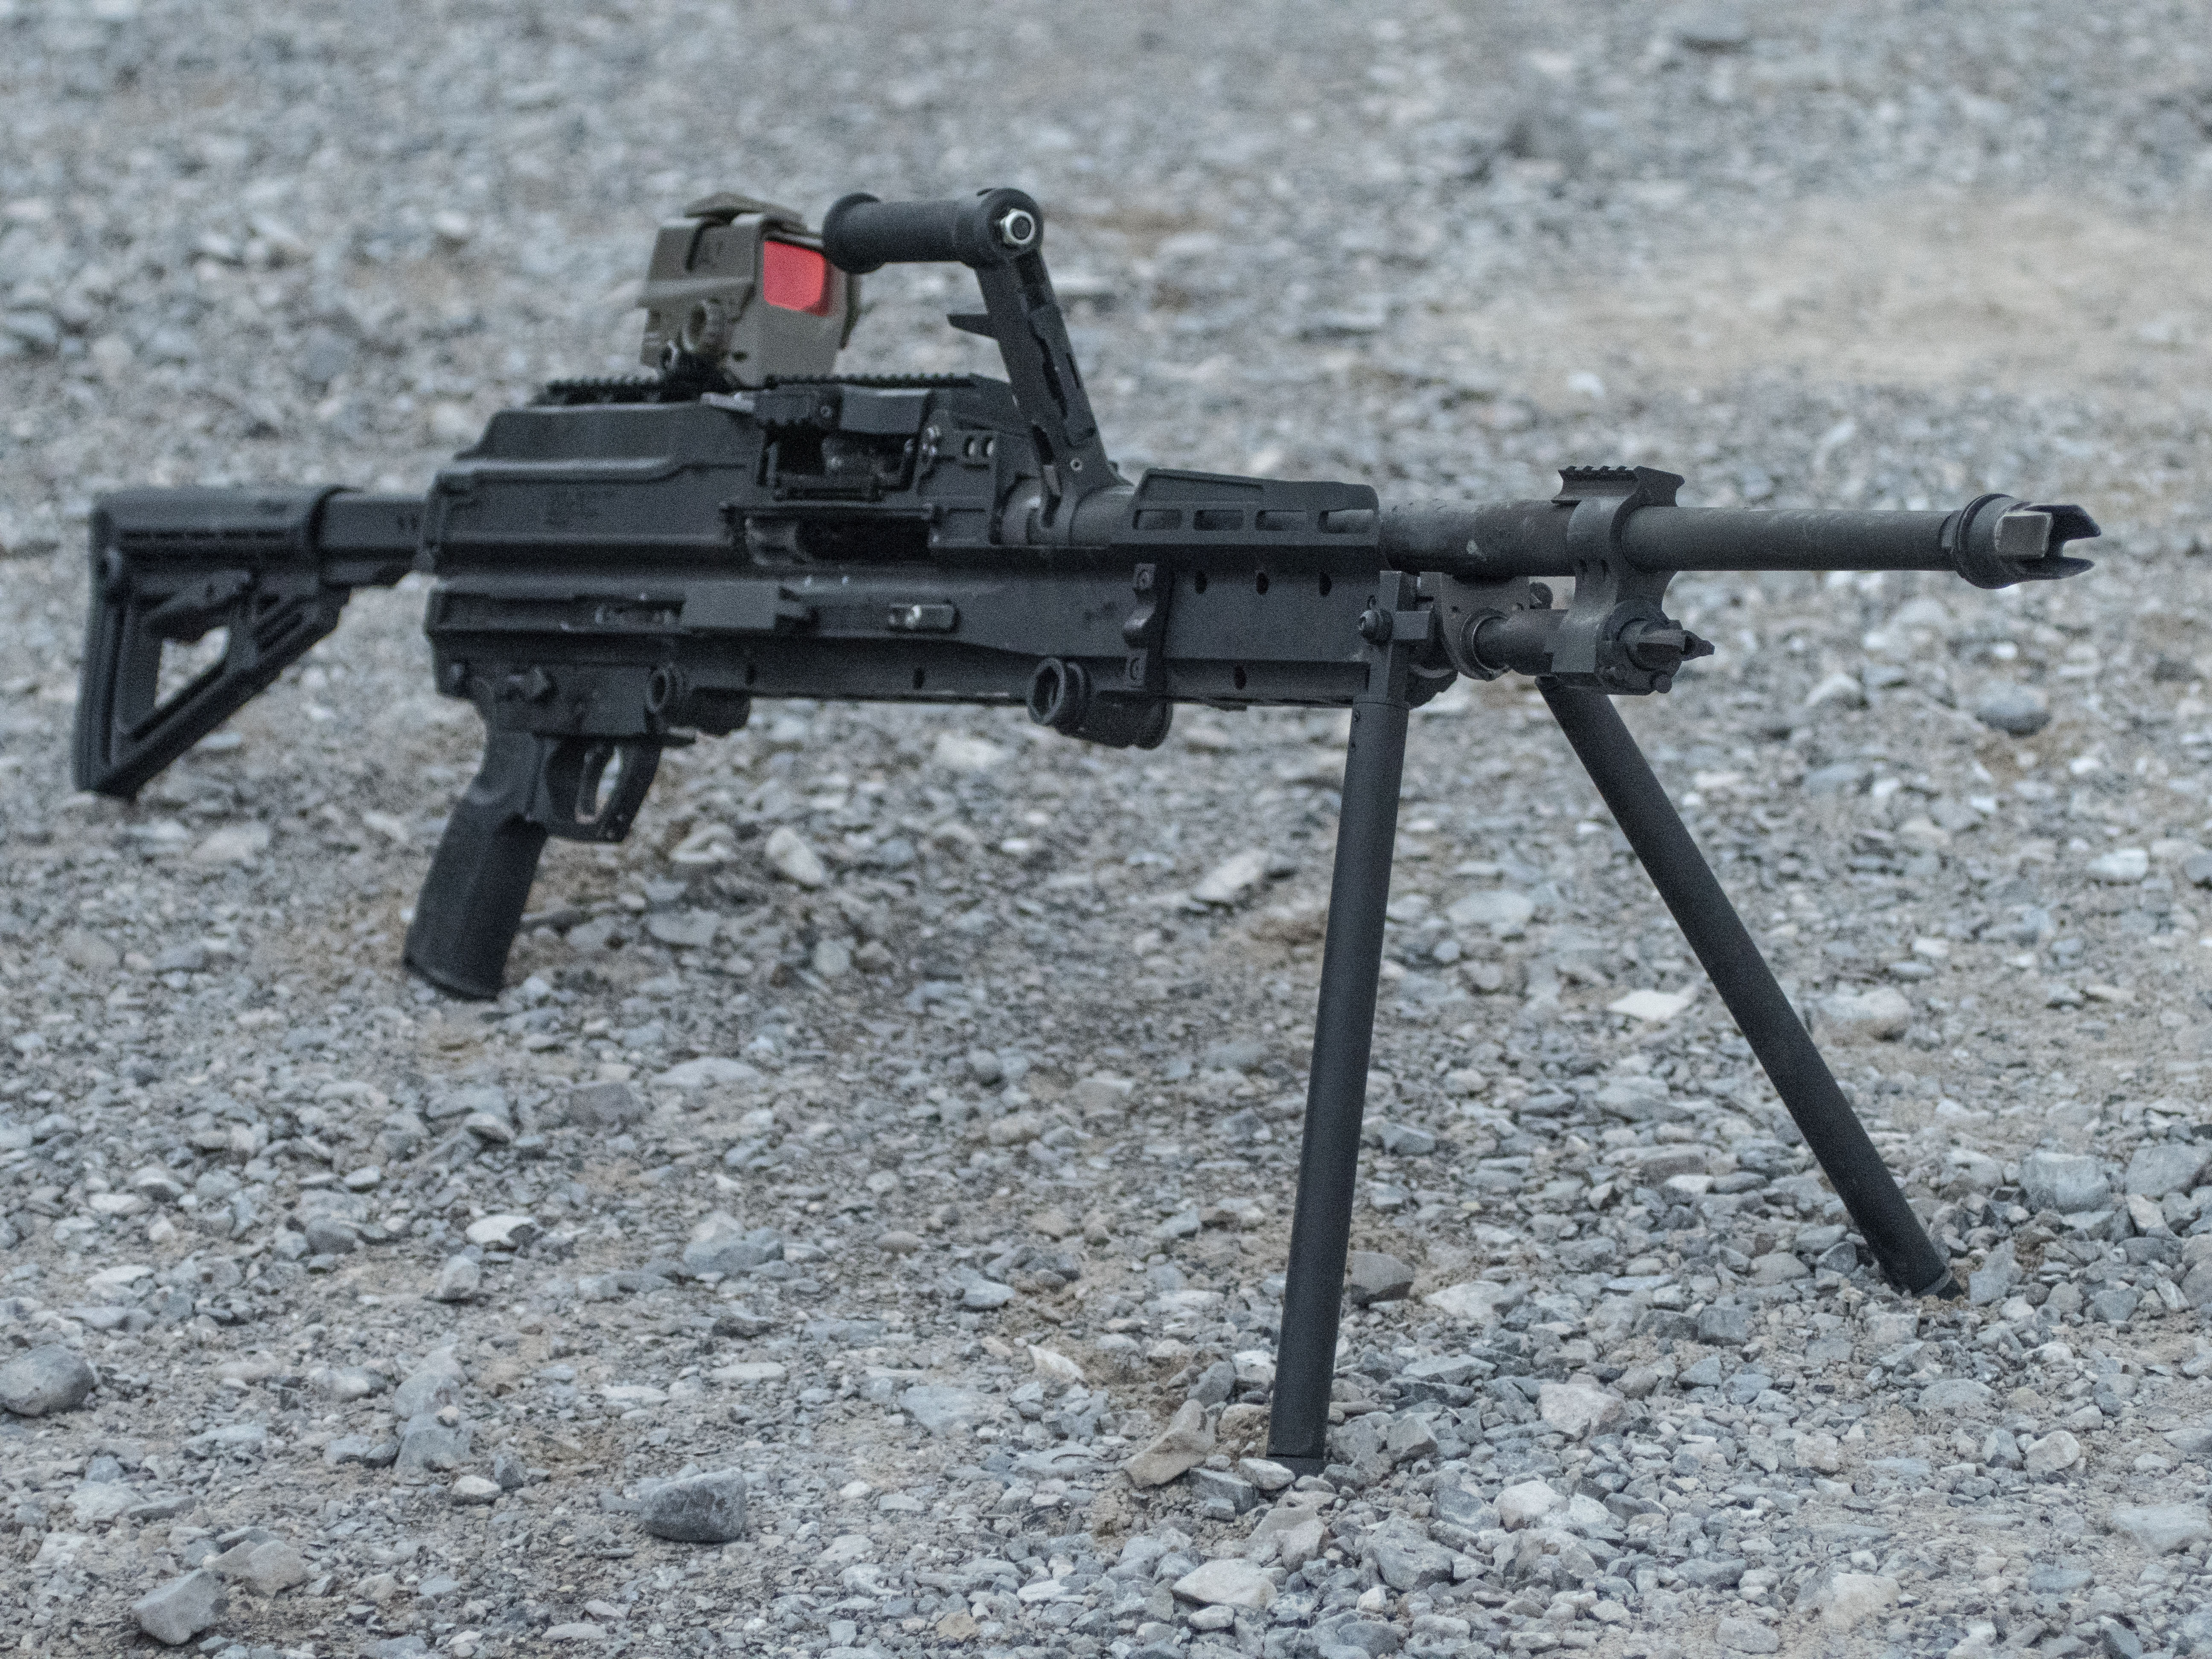 This is the Sig Sauer Lightweight Machine Gun or SLMG. The company hopes to win a Special Operations Command contract with this 20-pound medium machine gun in .338 NM. (Sig Sauer)